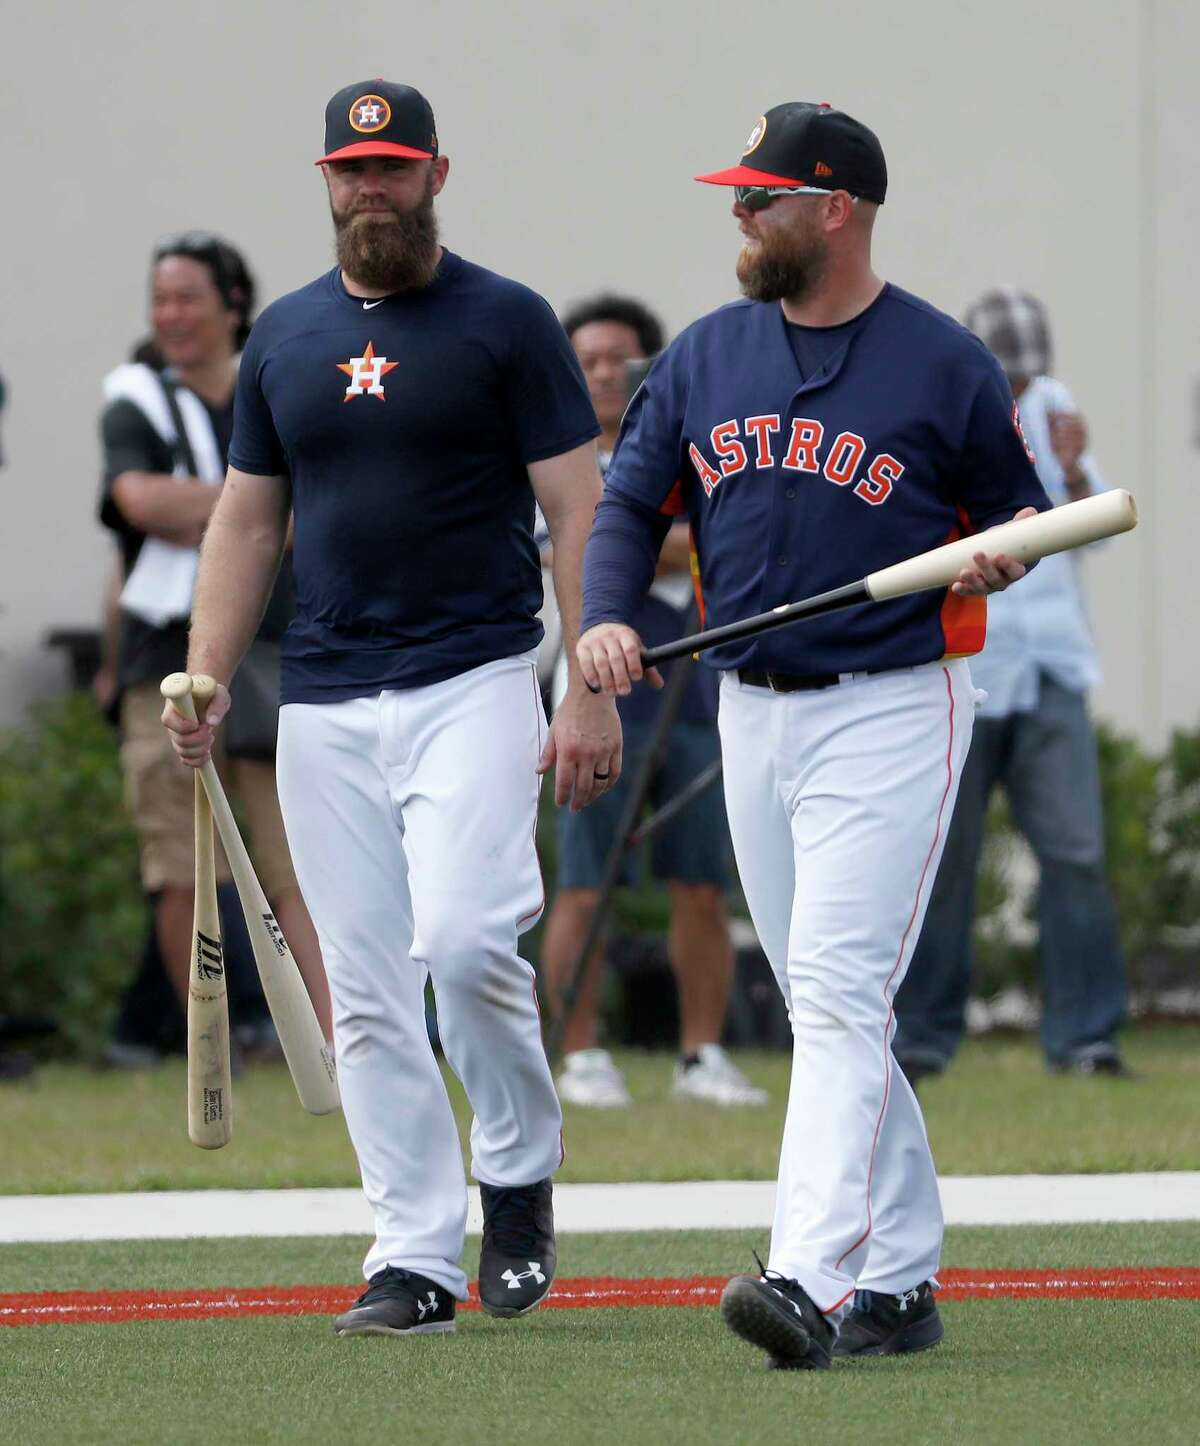 Houston Astros catchers Evan Gattis (11), Brian McCann (16) walk to another field during spring training at The Ballpark of the Palm Beaches, Wednesday, Feb. 21, 2018, in West Palm Beach.